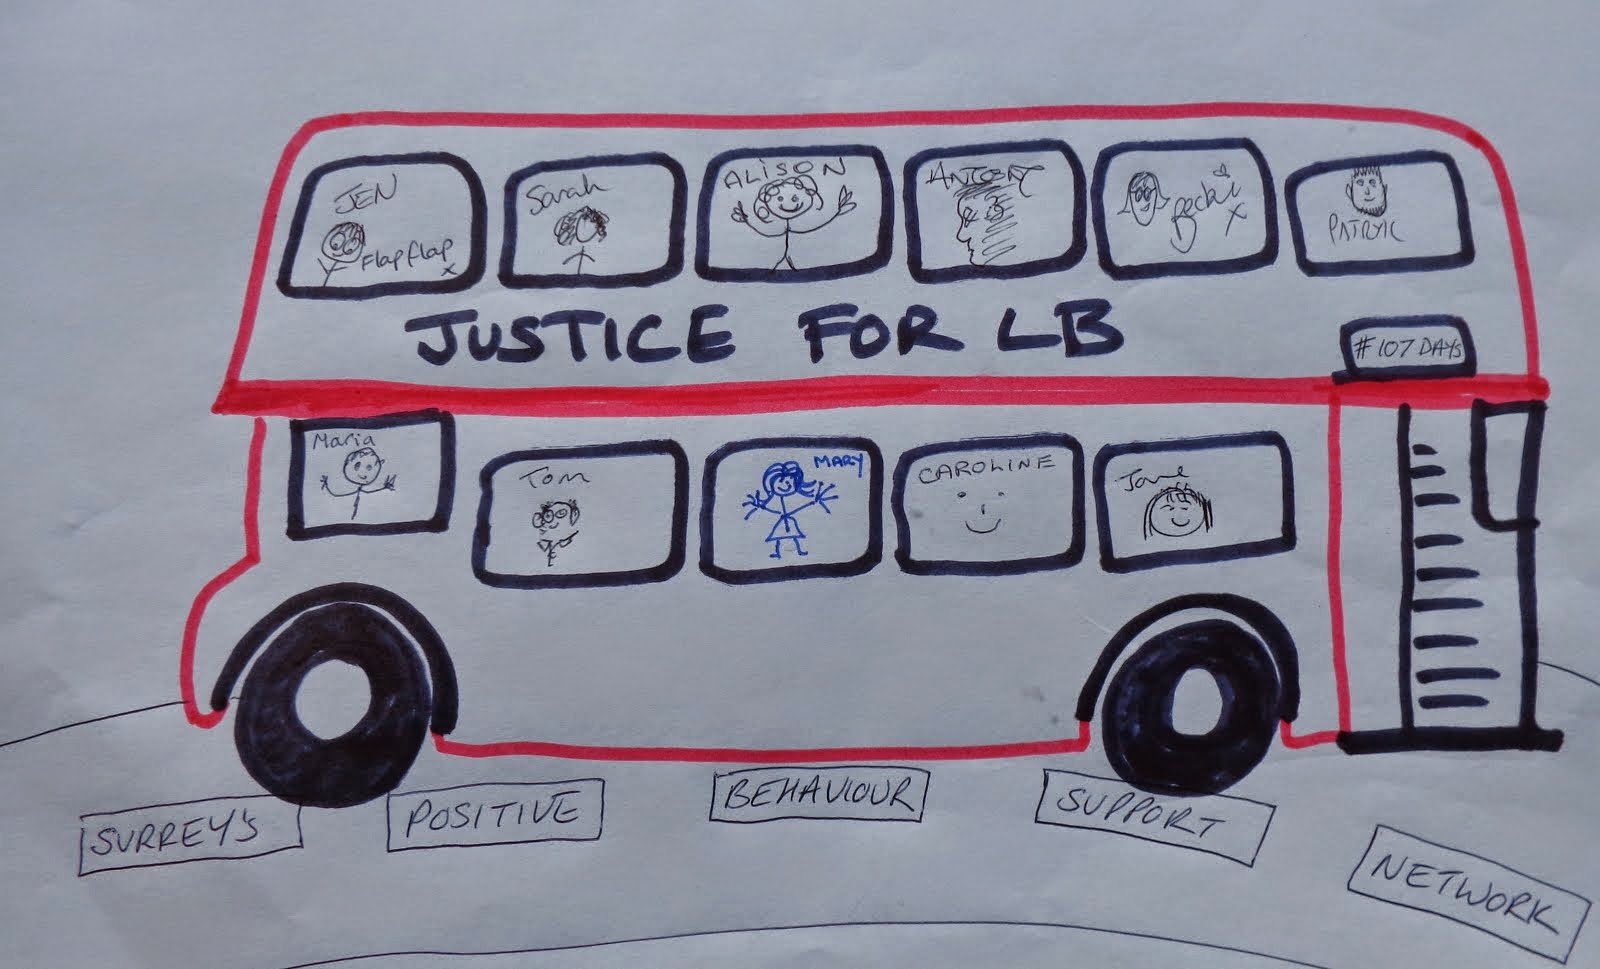 #JusticeforLB